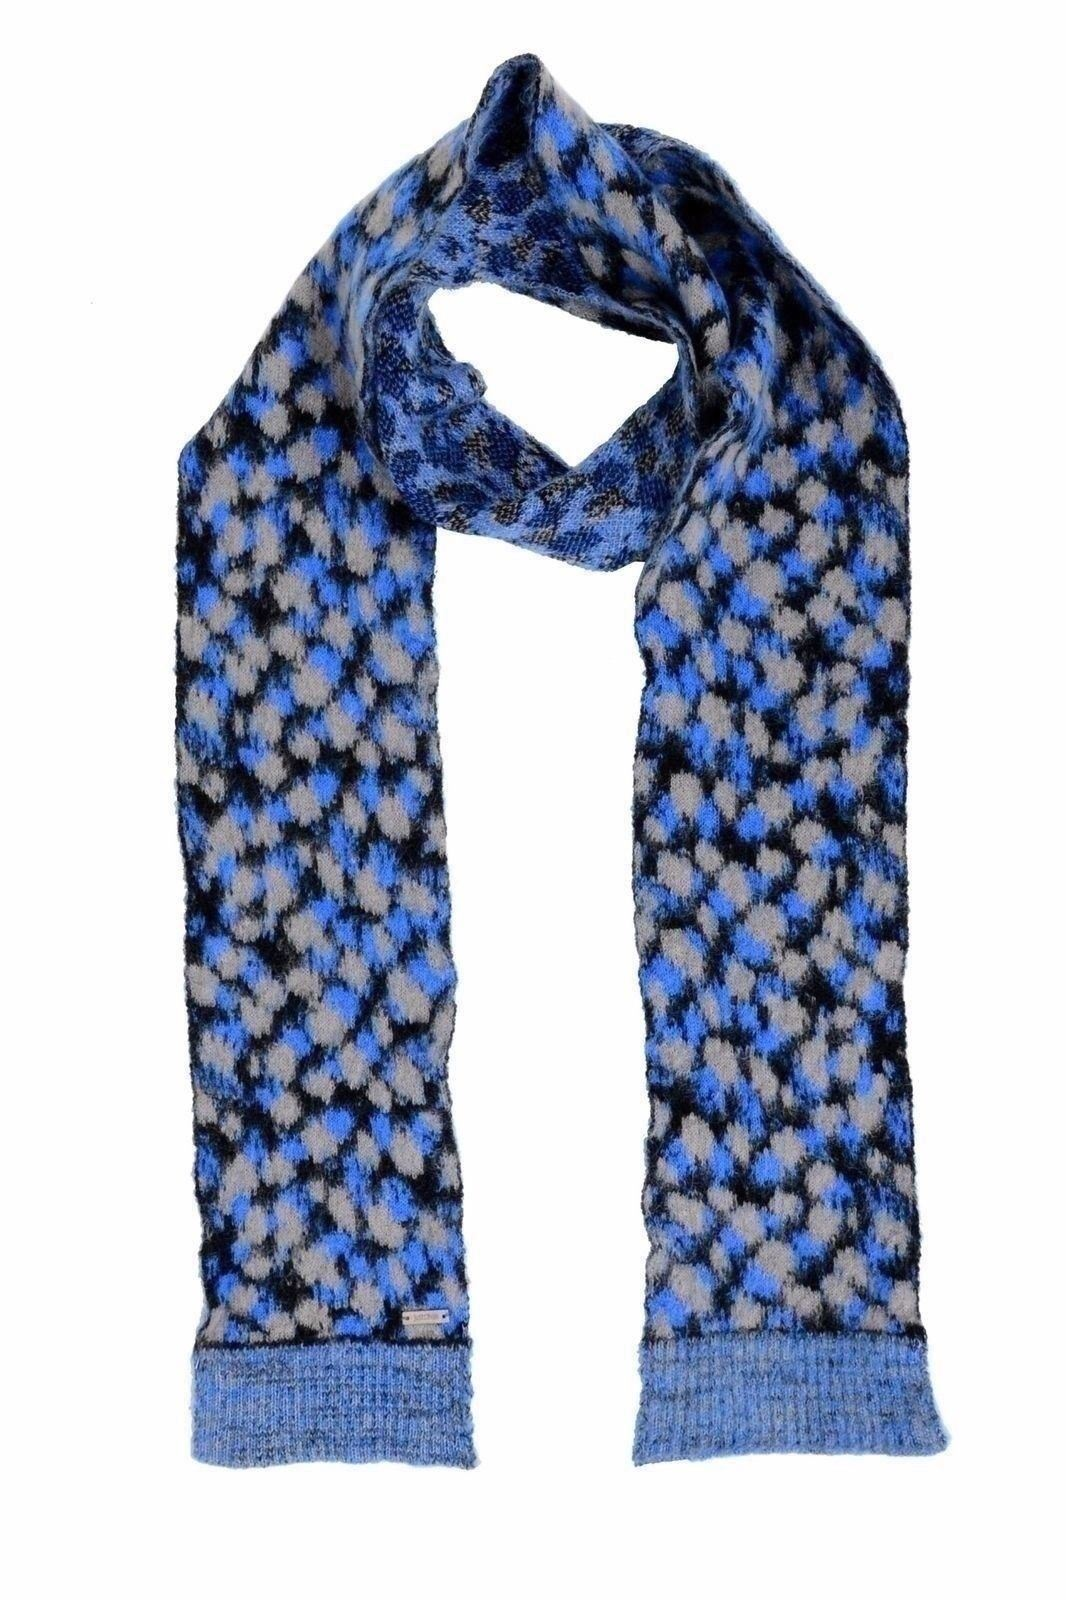 Just Cavalli Unisex Multi-Color Knitted Long Scarf